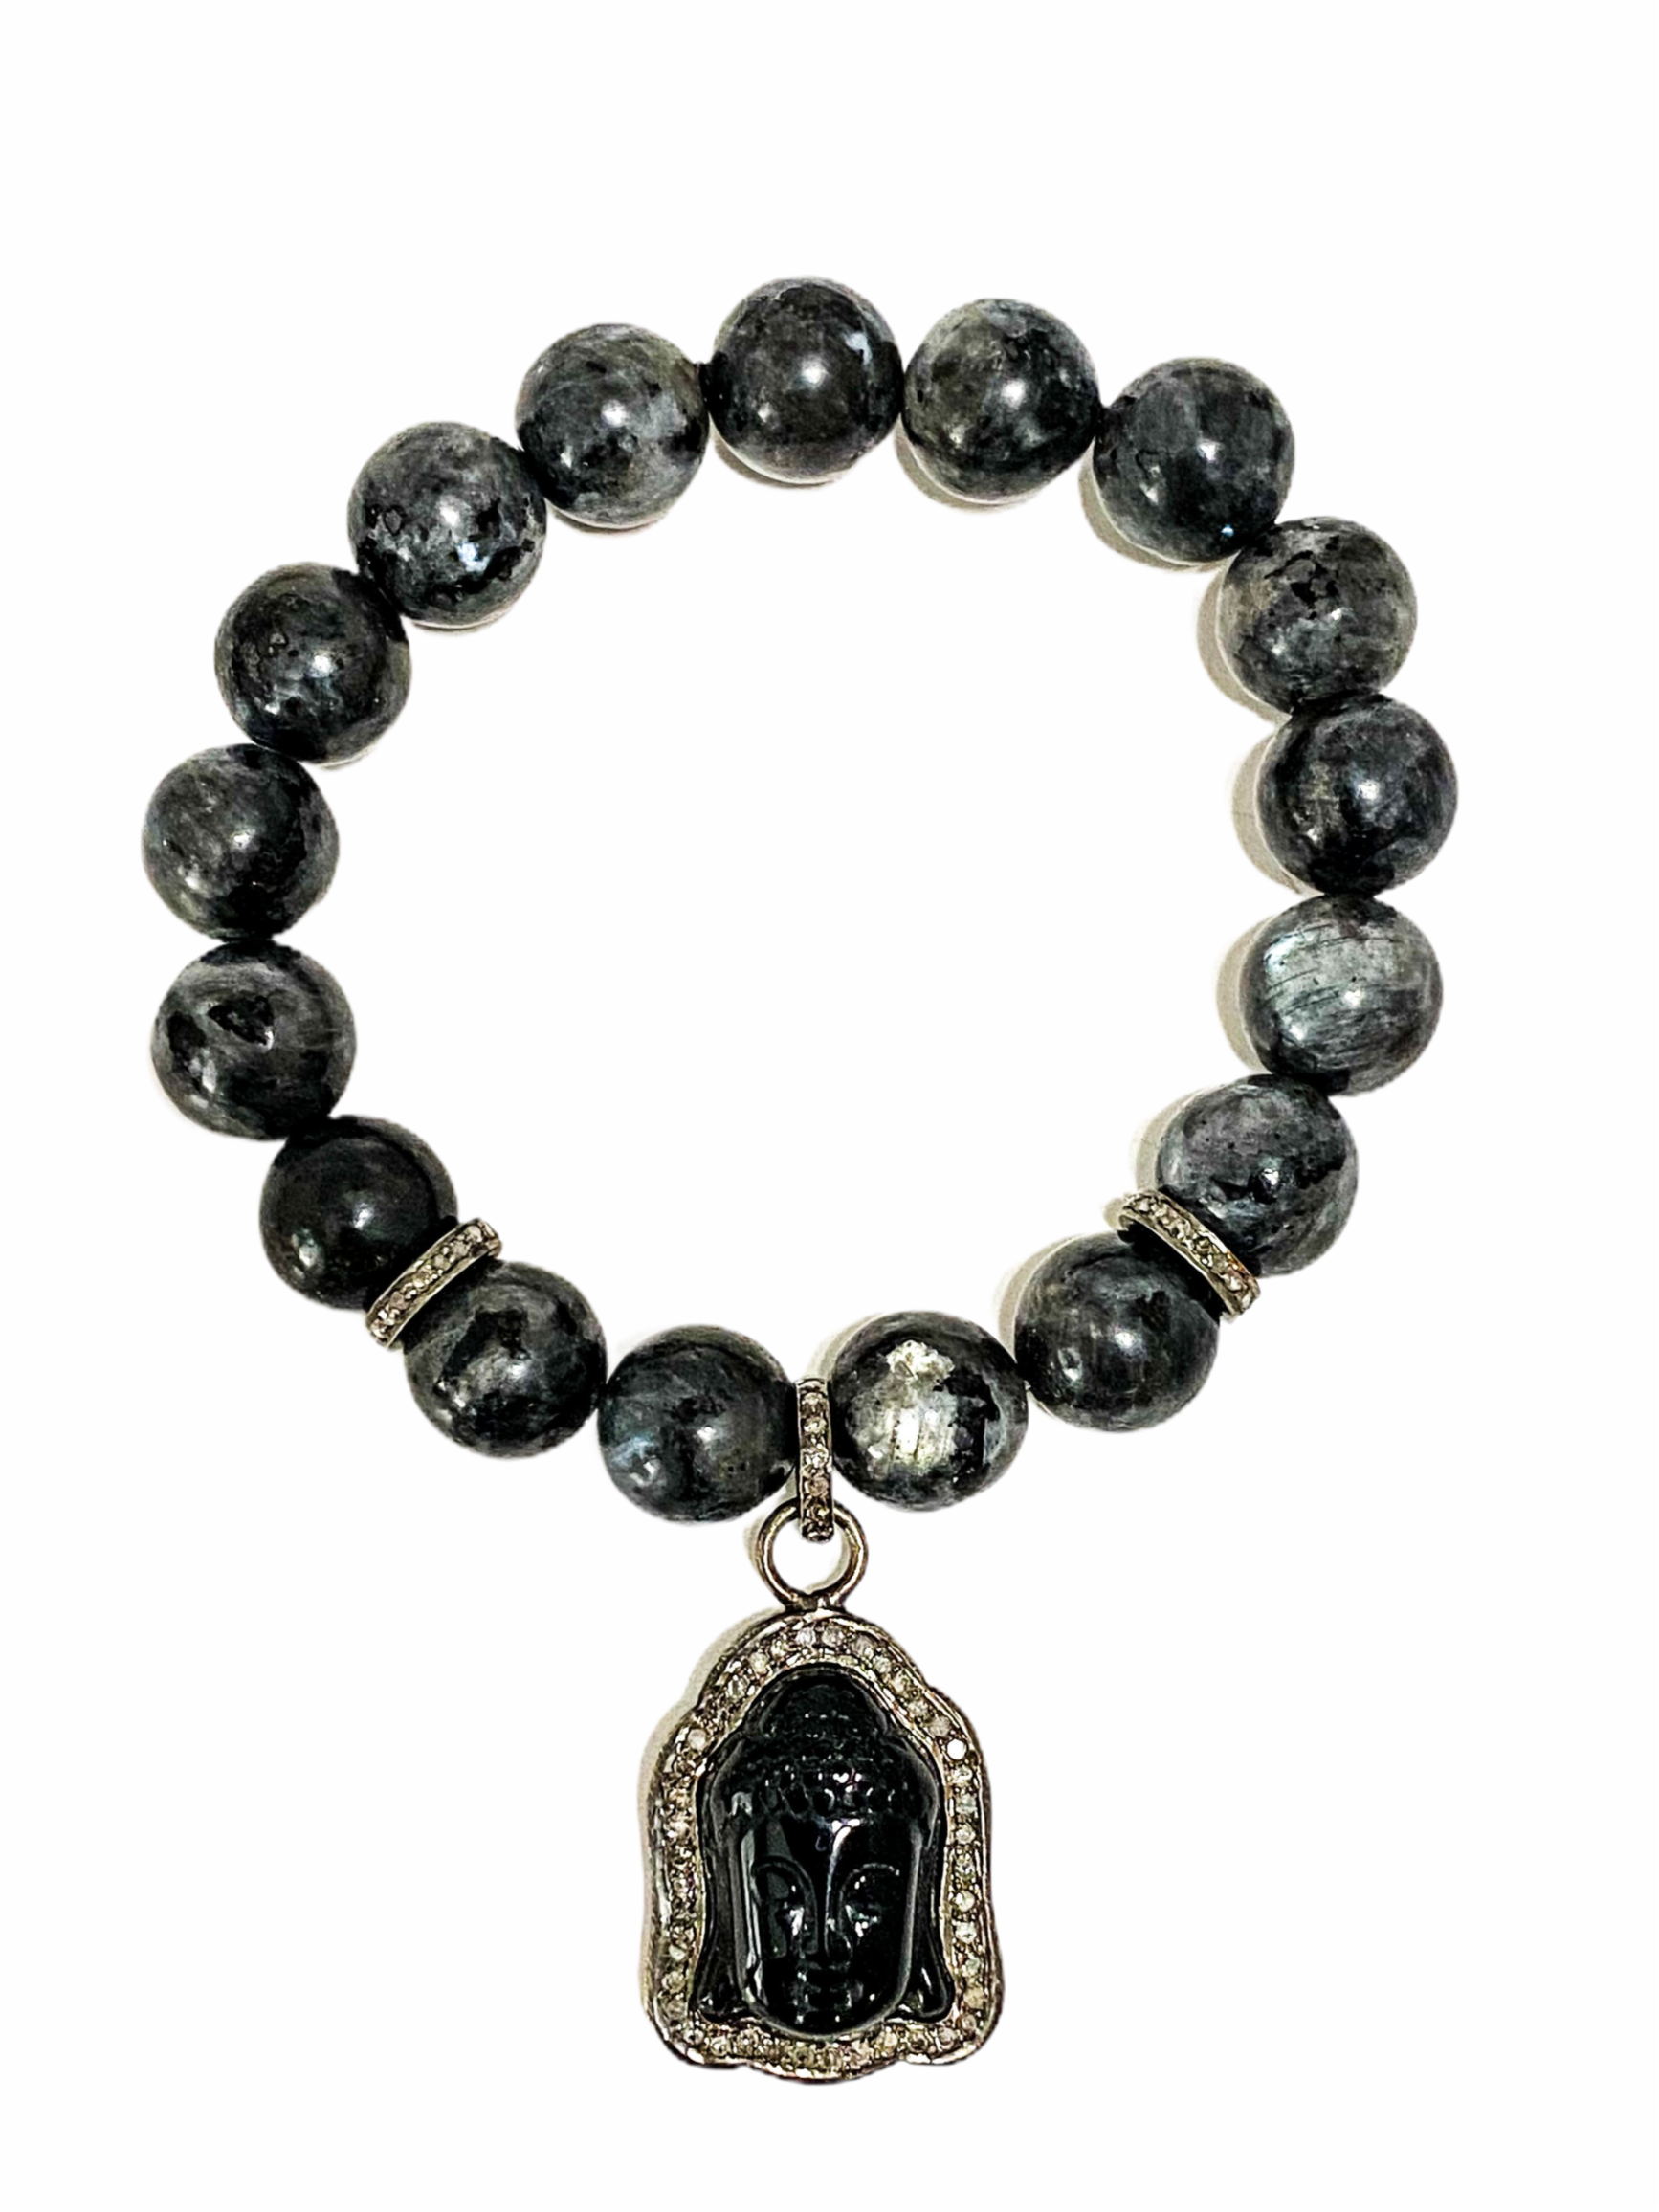 S.Row Designs Onyx Beaded Buddha Bracelet